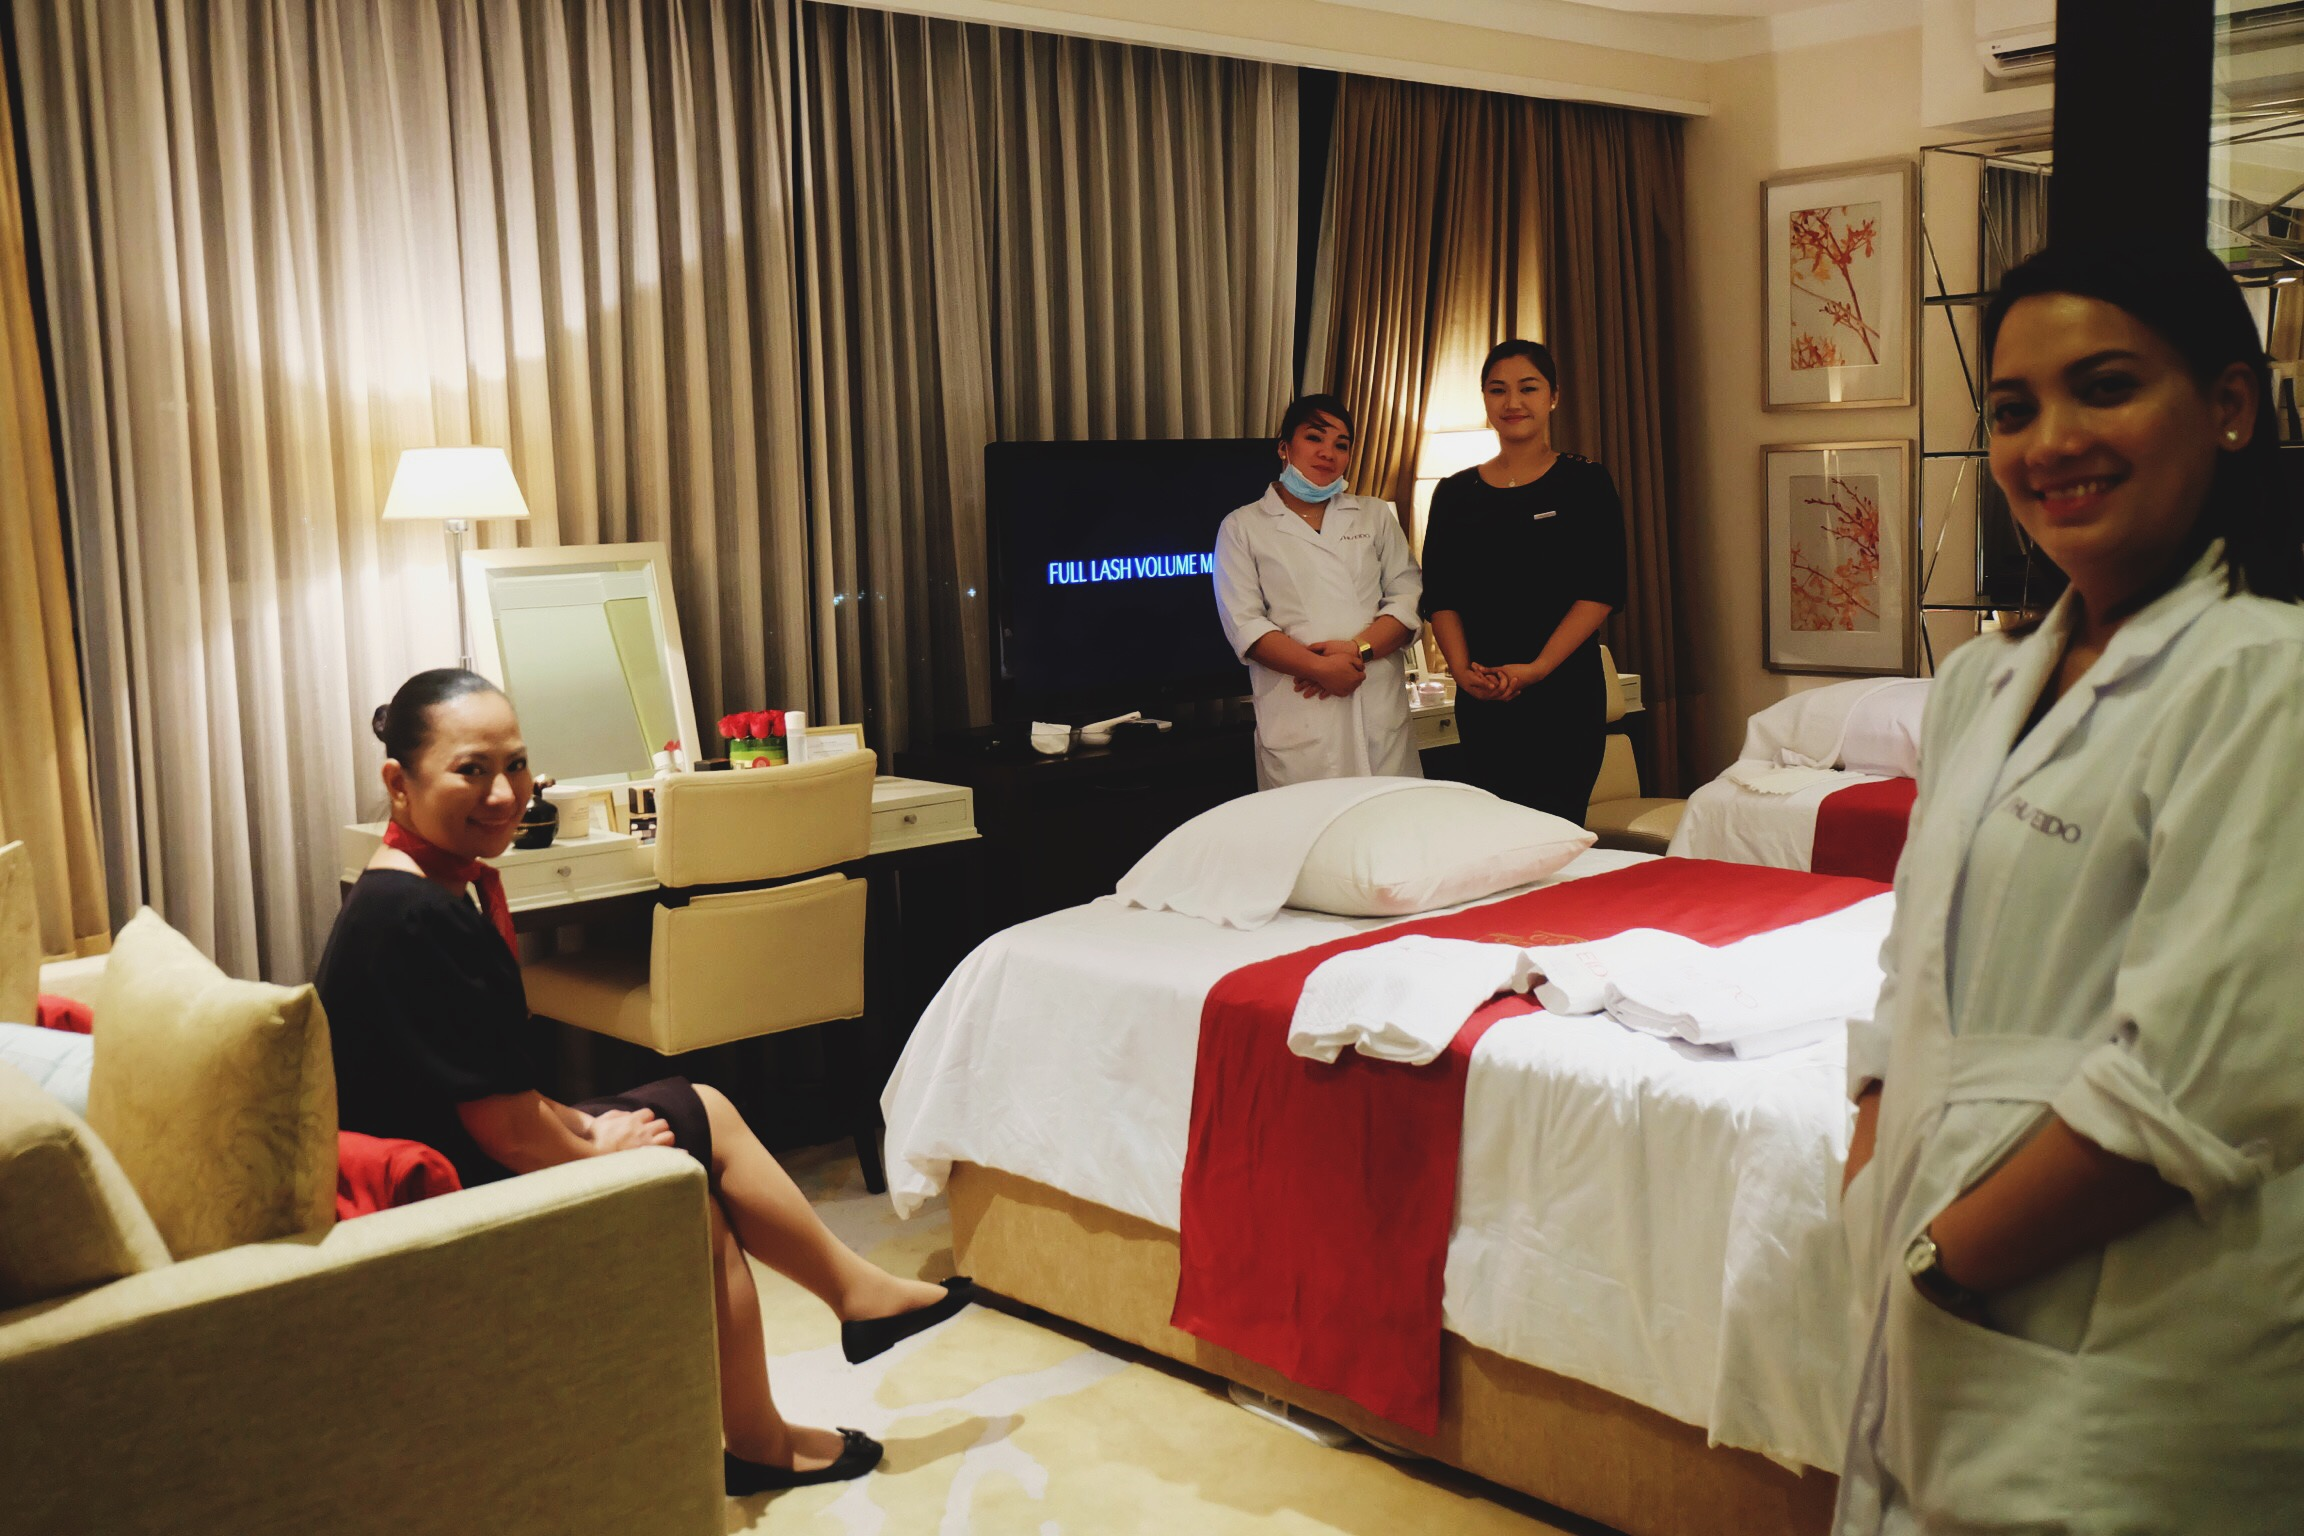 Processed with VSCOcam with 4 preset